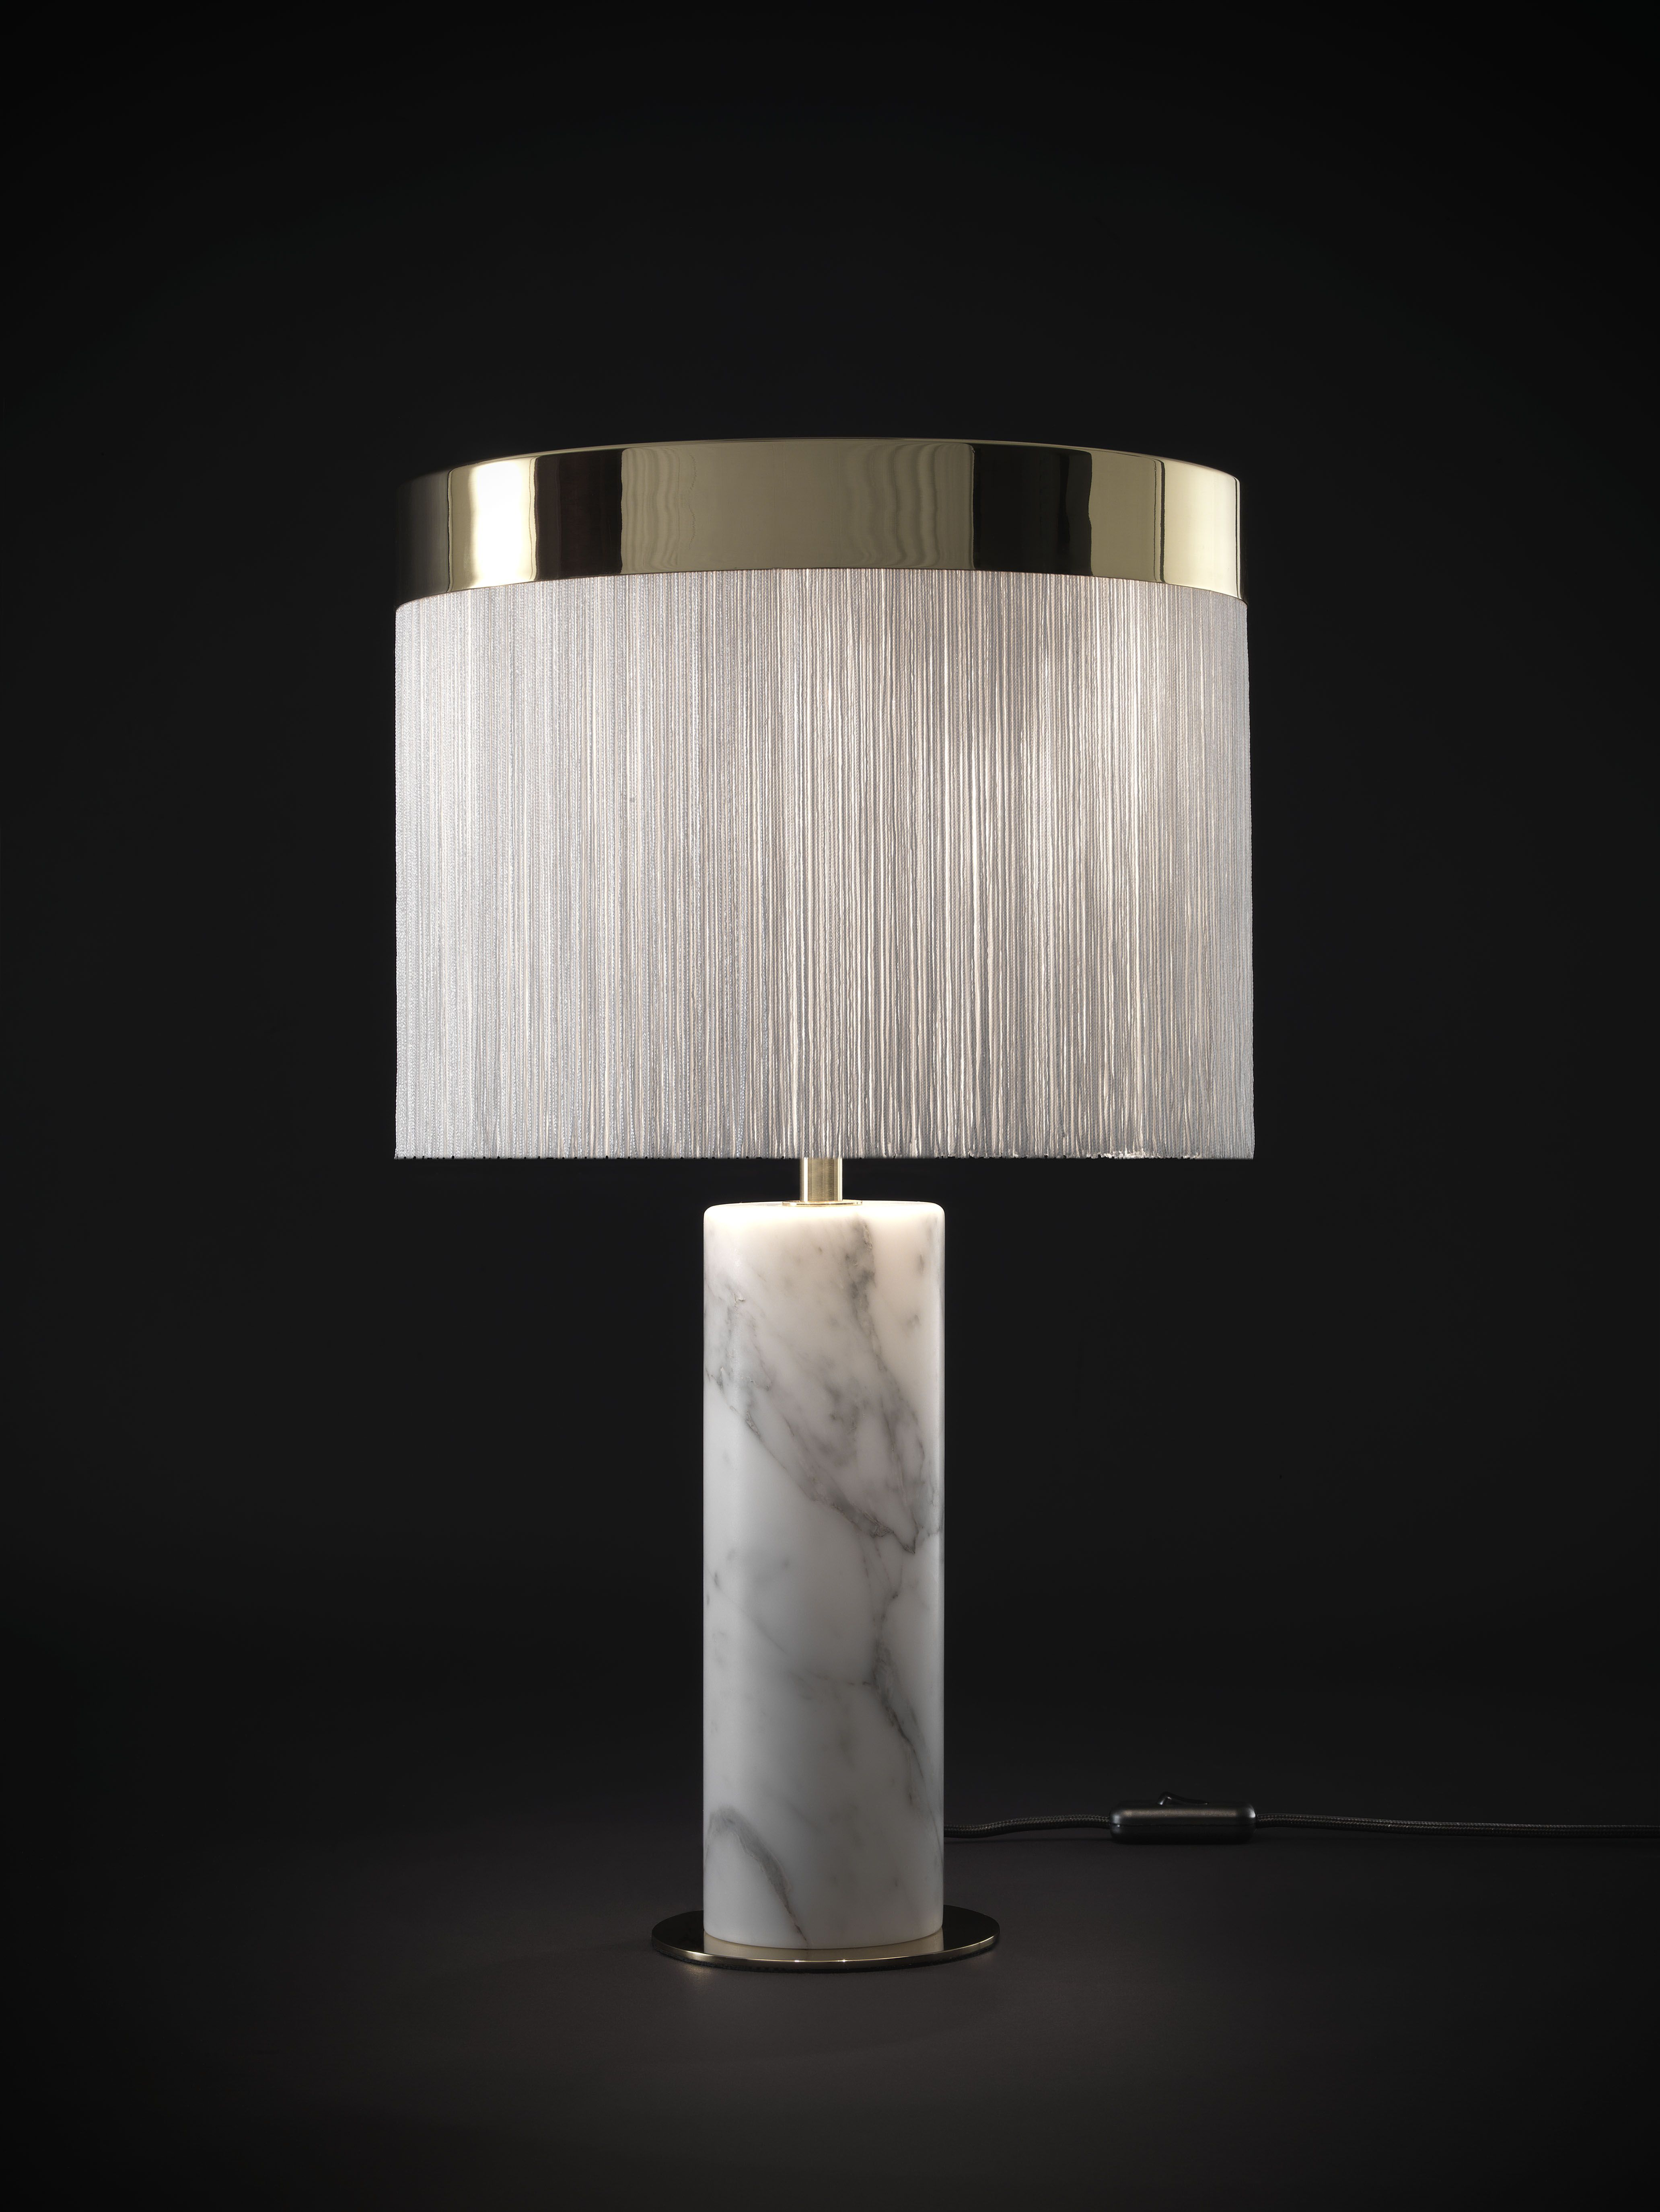 Orsola #ceilinglamps | 灯具 | Contemporary table lamps, Bedroom ...